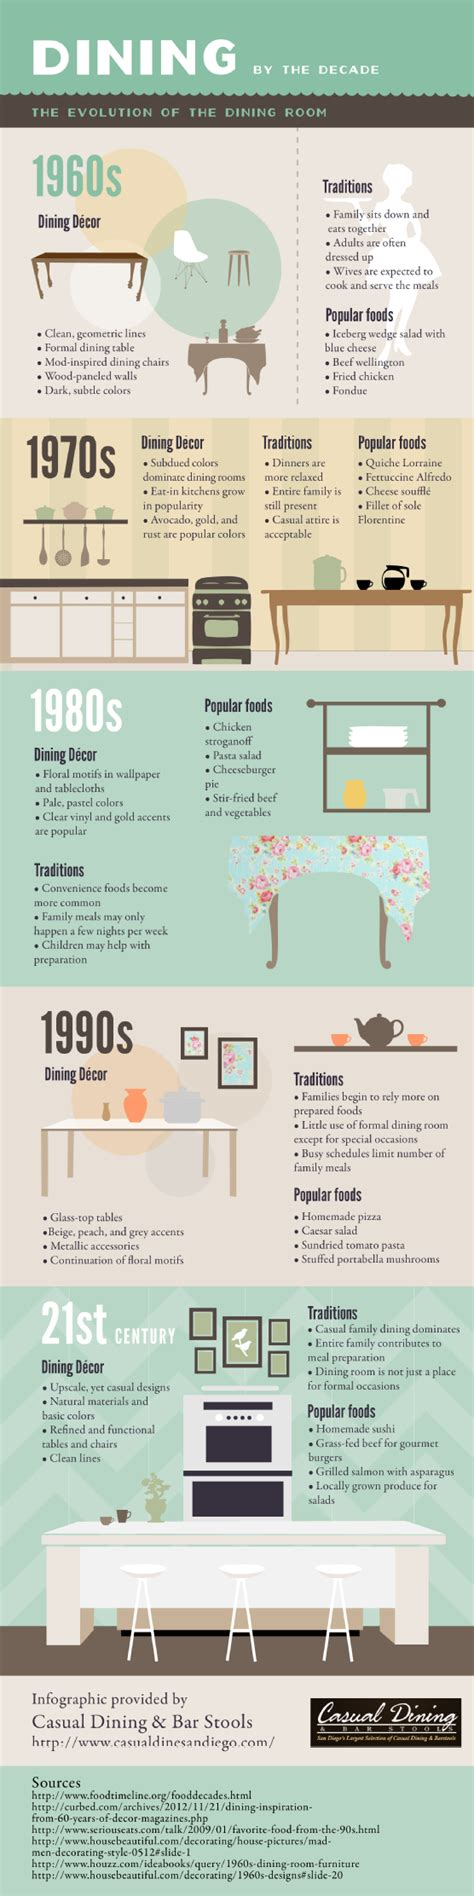 Interior Design Interesting Facts by Interior Design History Facts